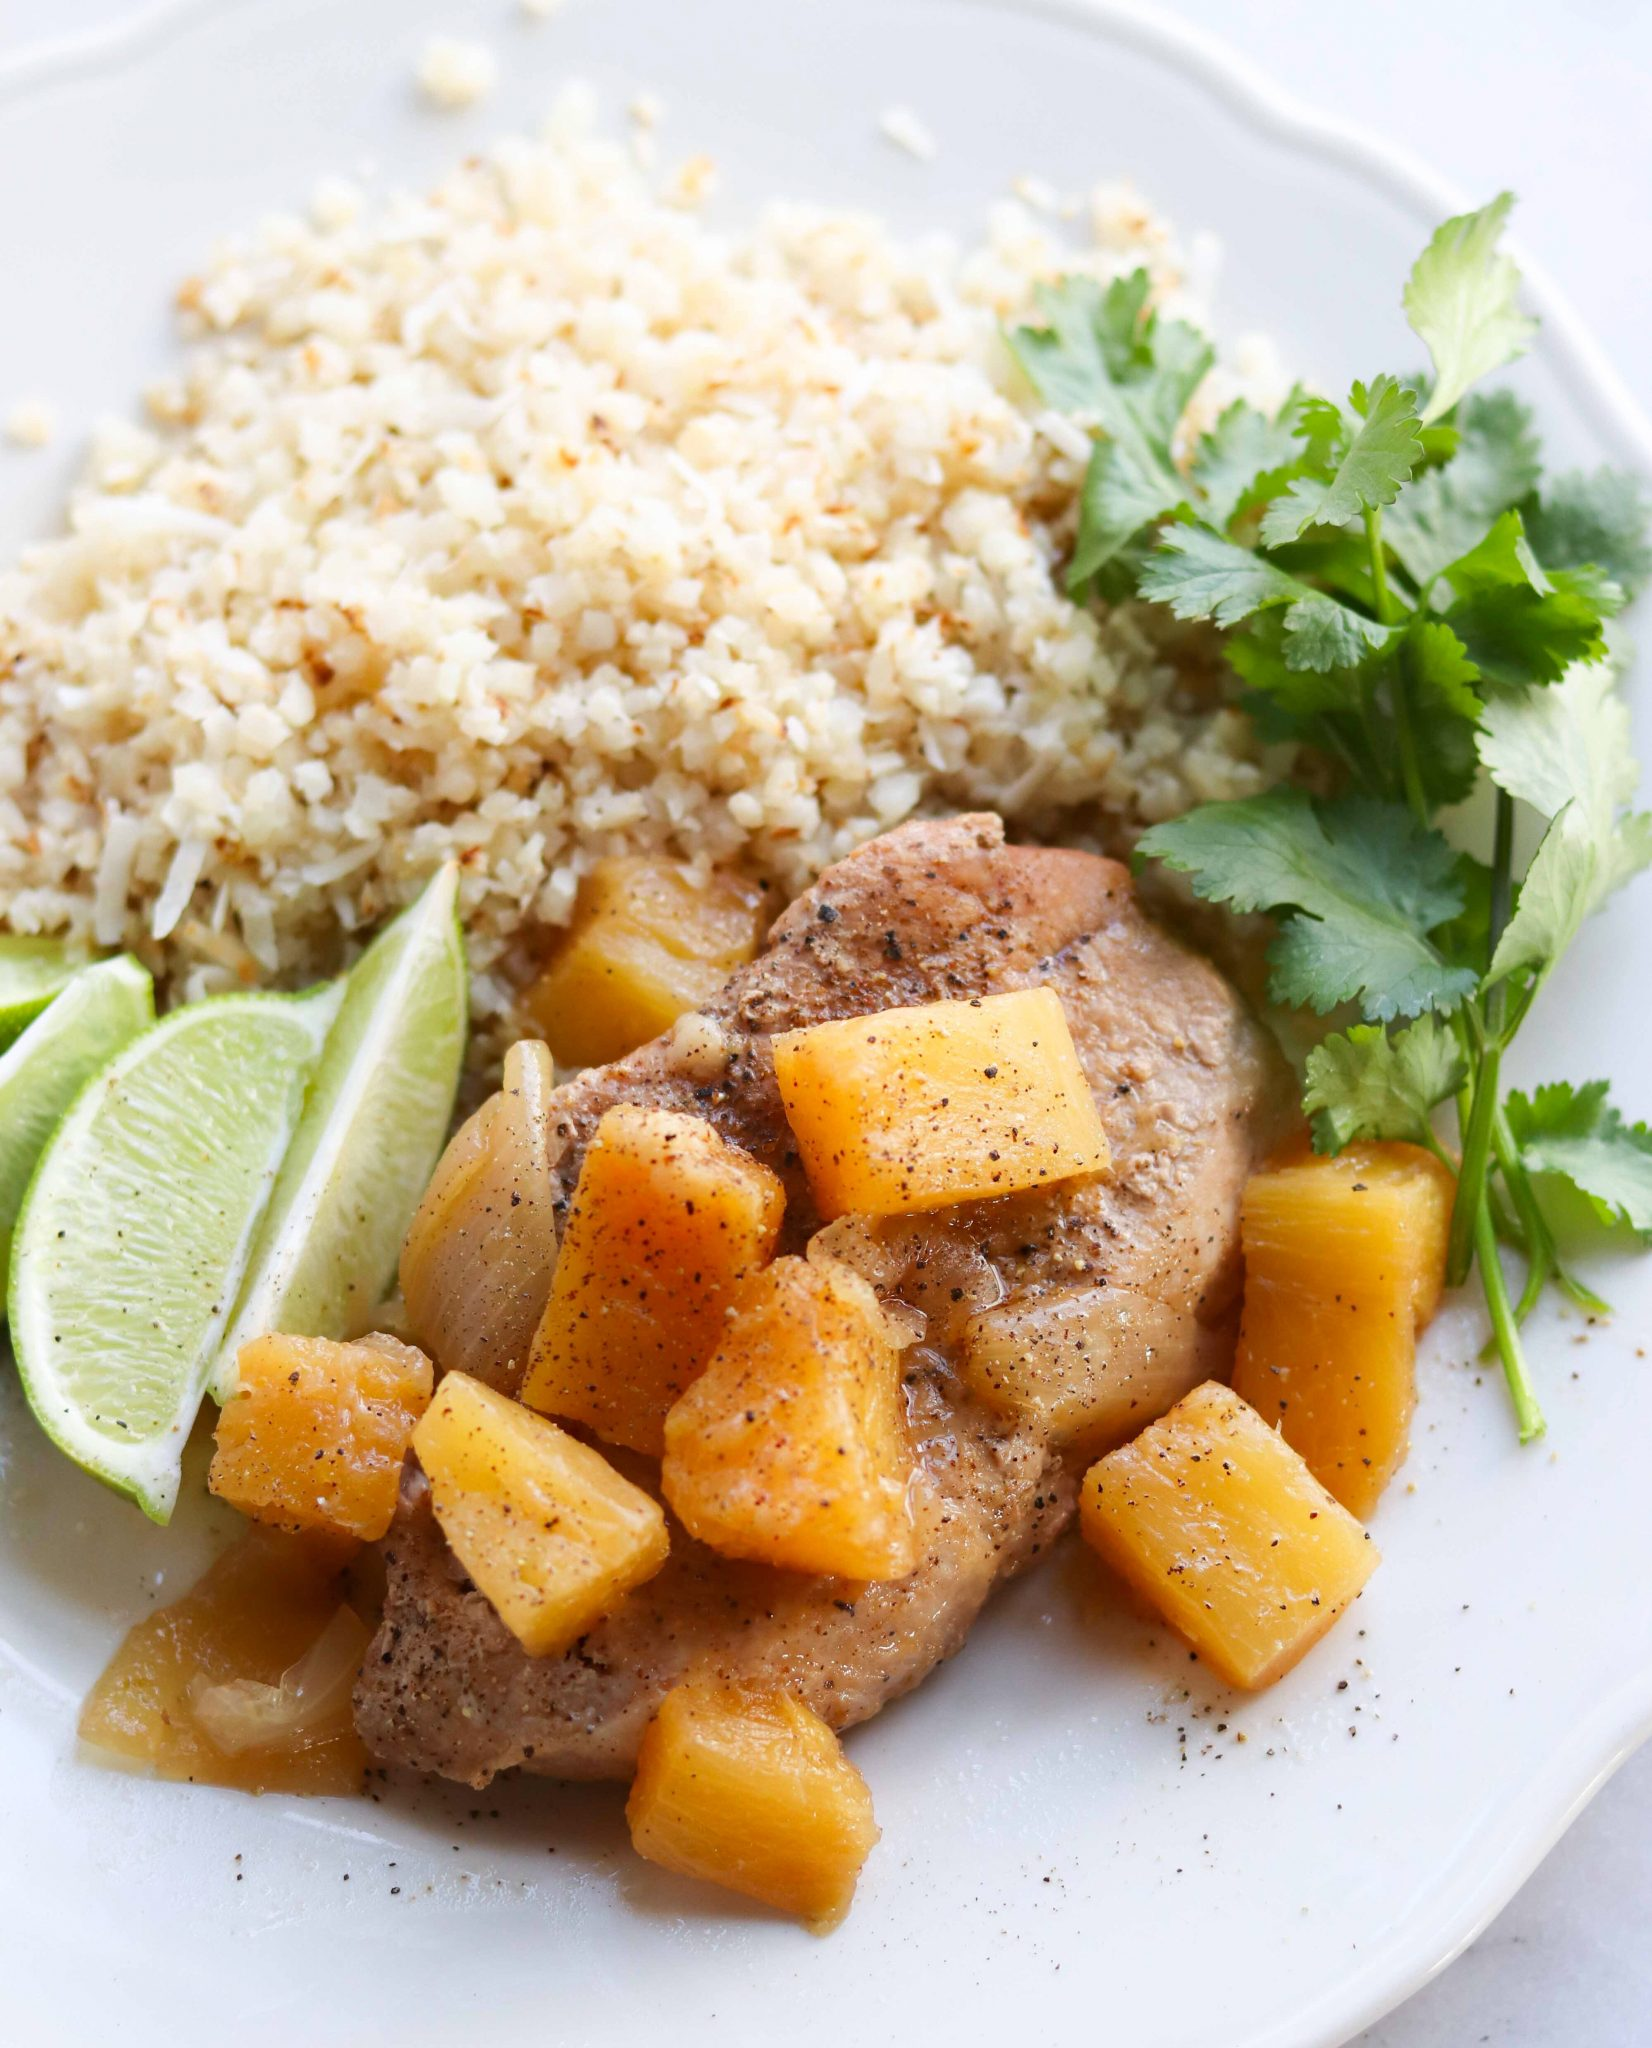 Easy Instant Pot Pineapple Pork Chops served with Cauliflower Rice, lime slices, and cilantro.